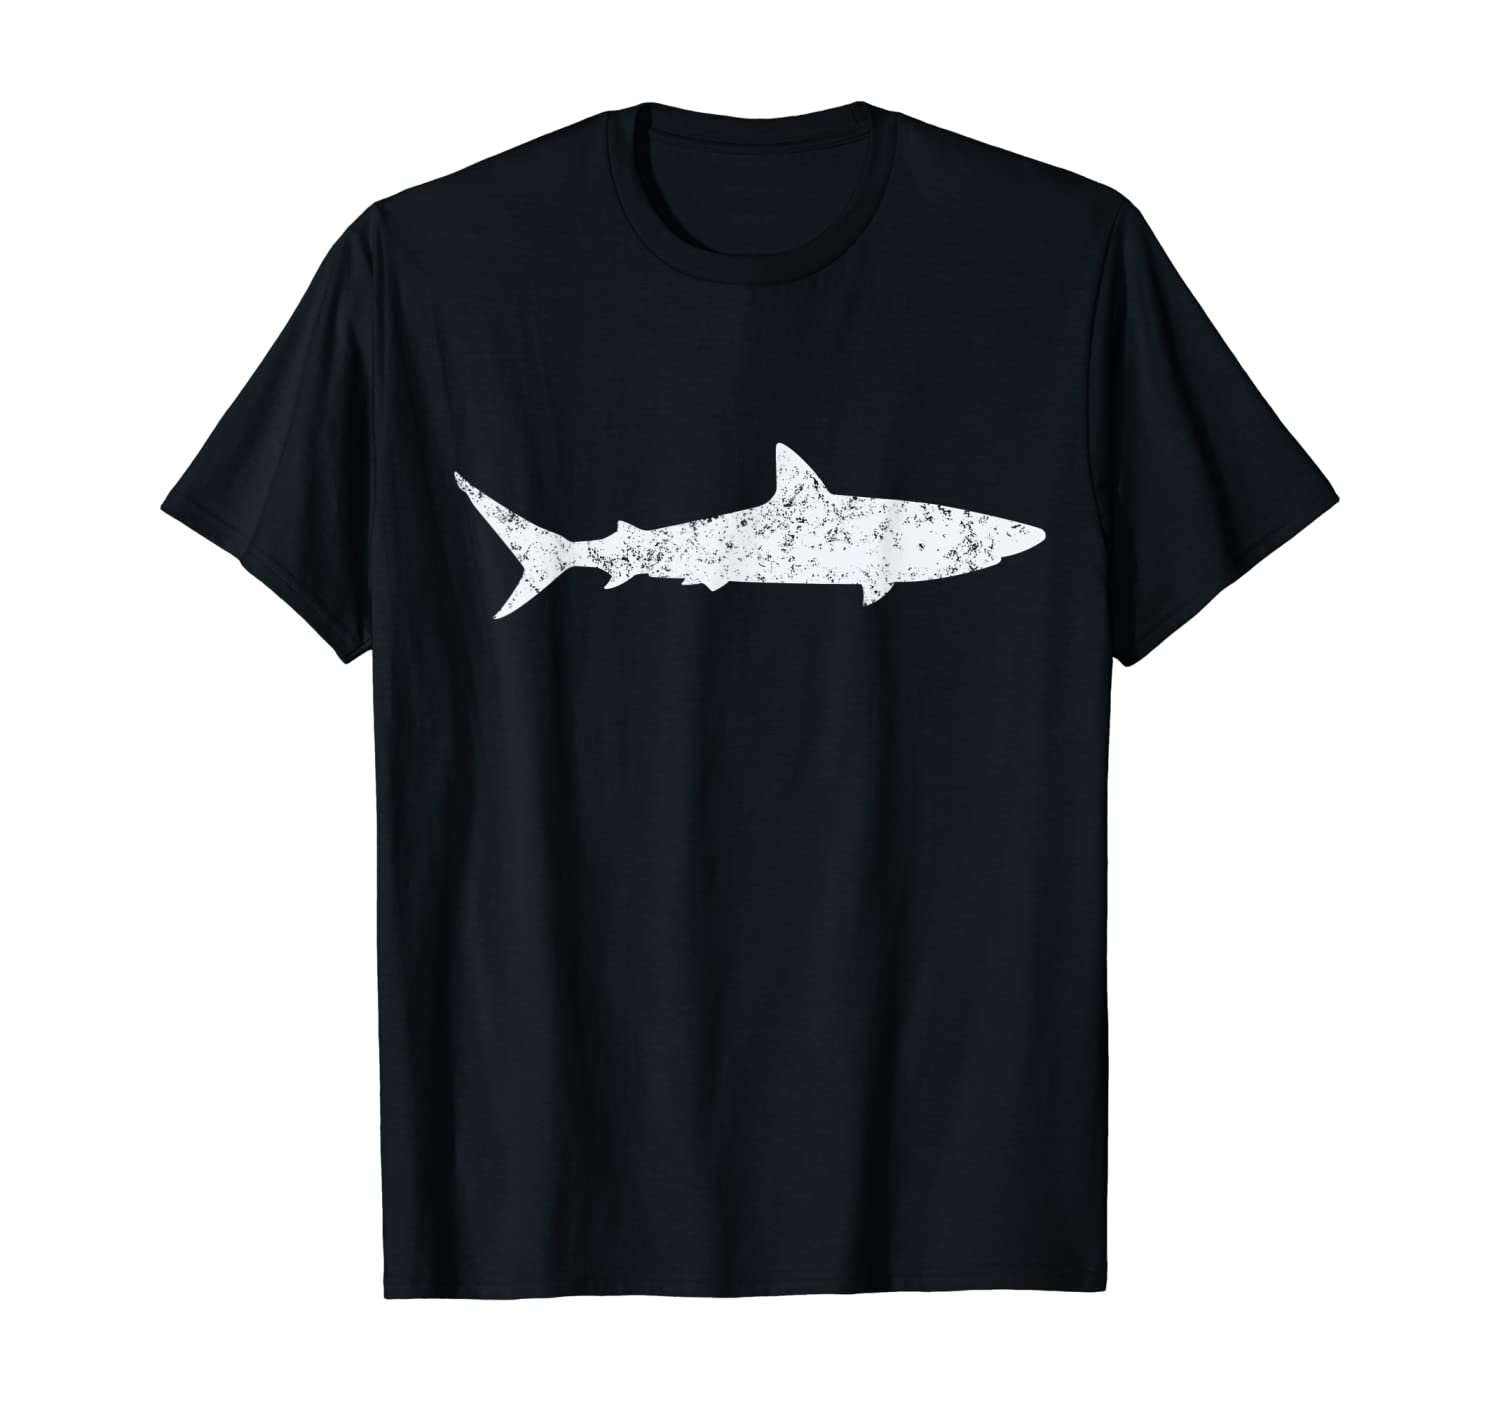 Shark Retro Vintage T-Shirt 70s Distressed Throwback Tee